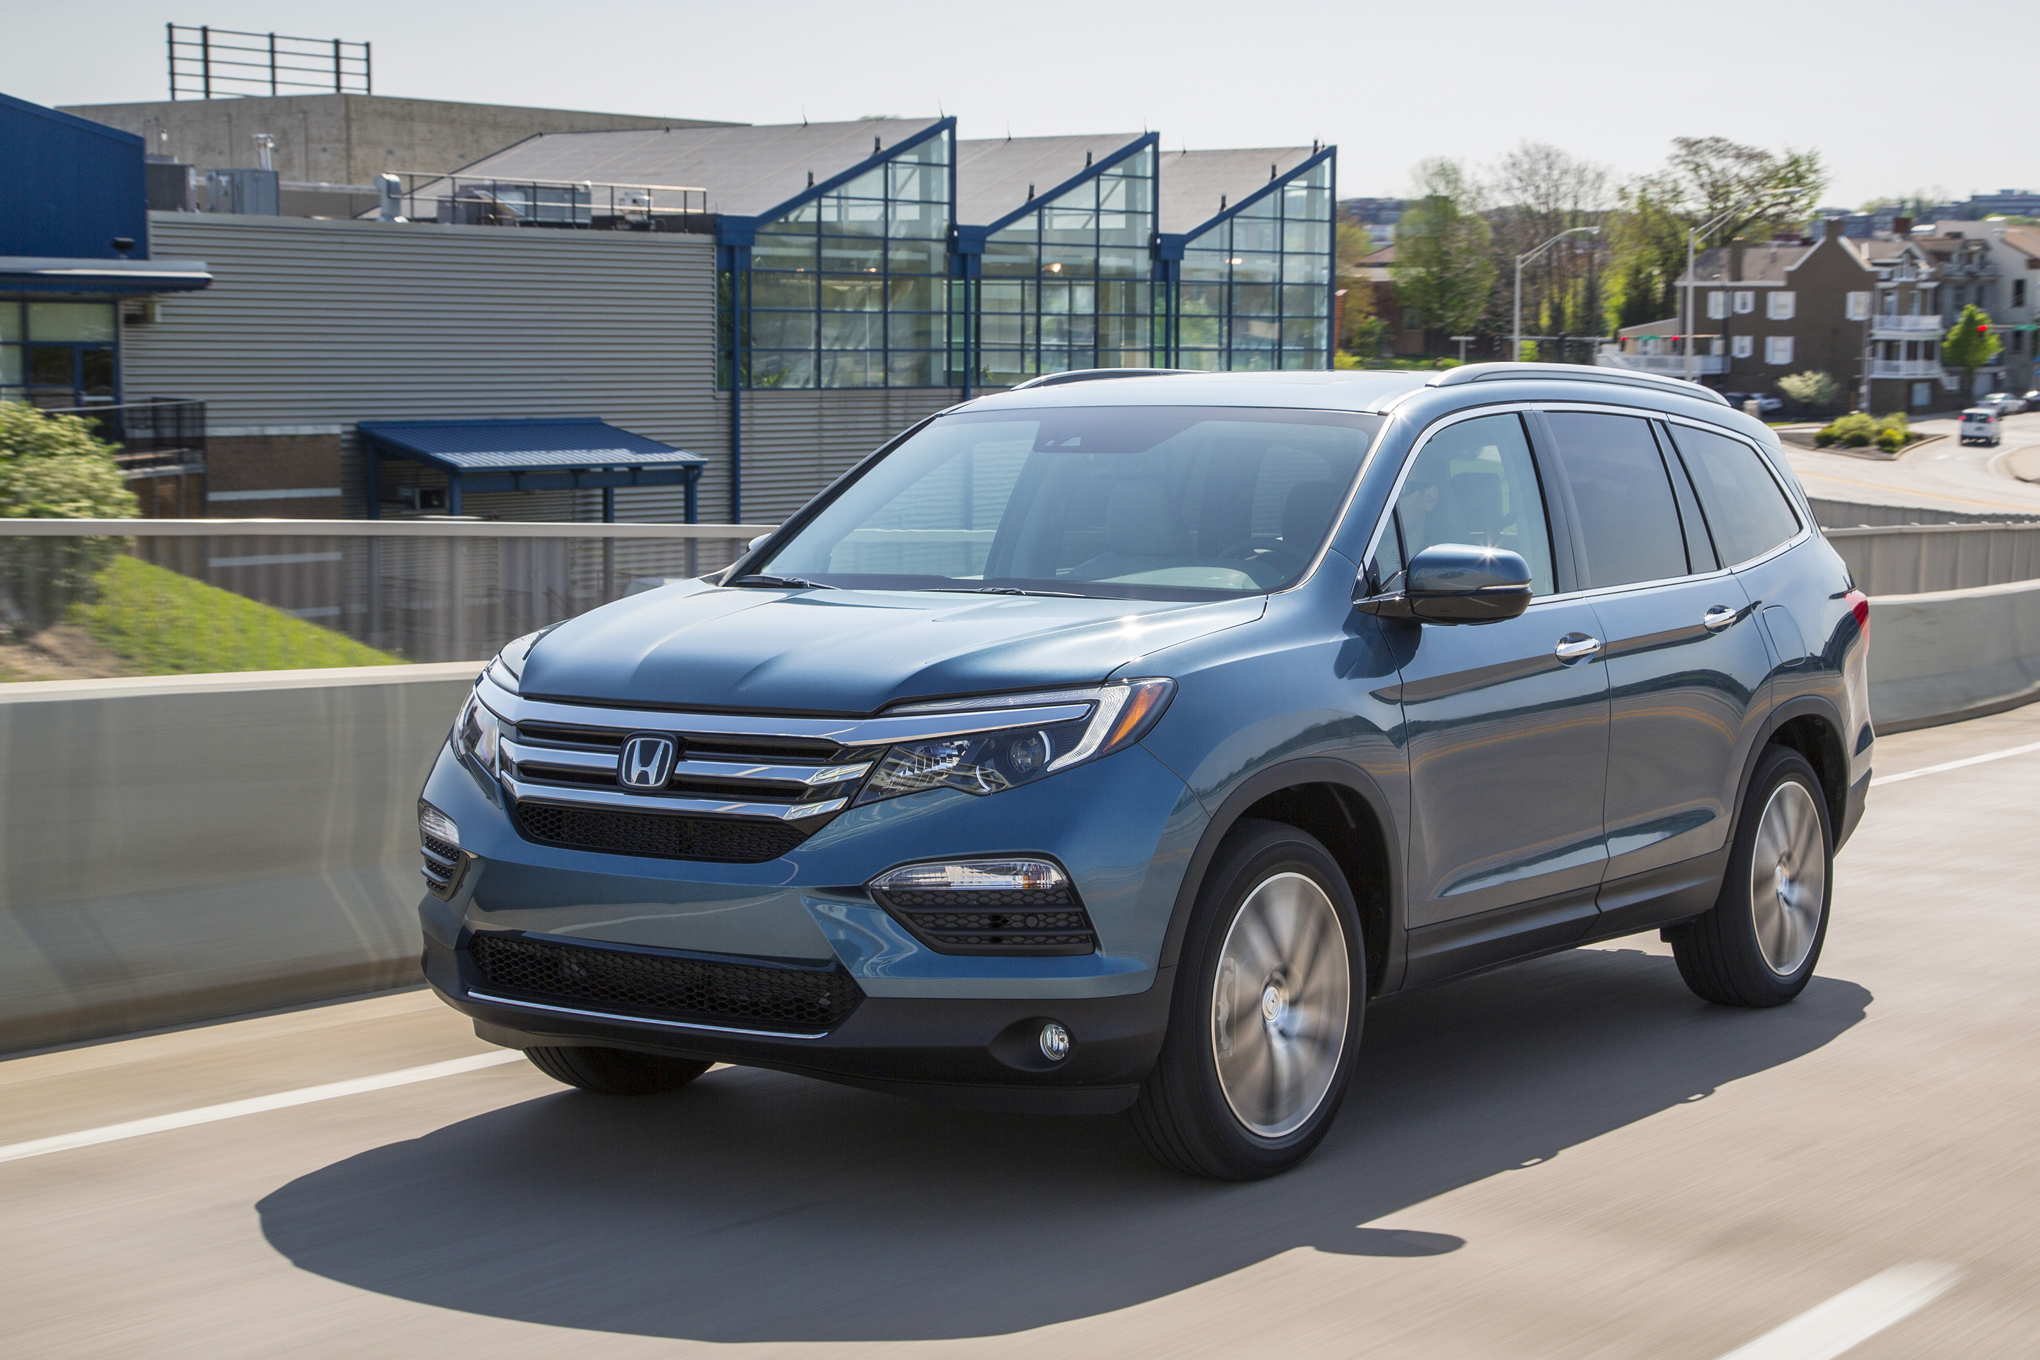 Priced: Redesigned 2016 Honda Pilot Starts At $30,875